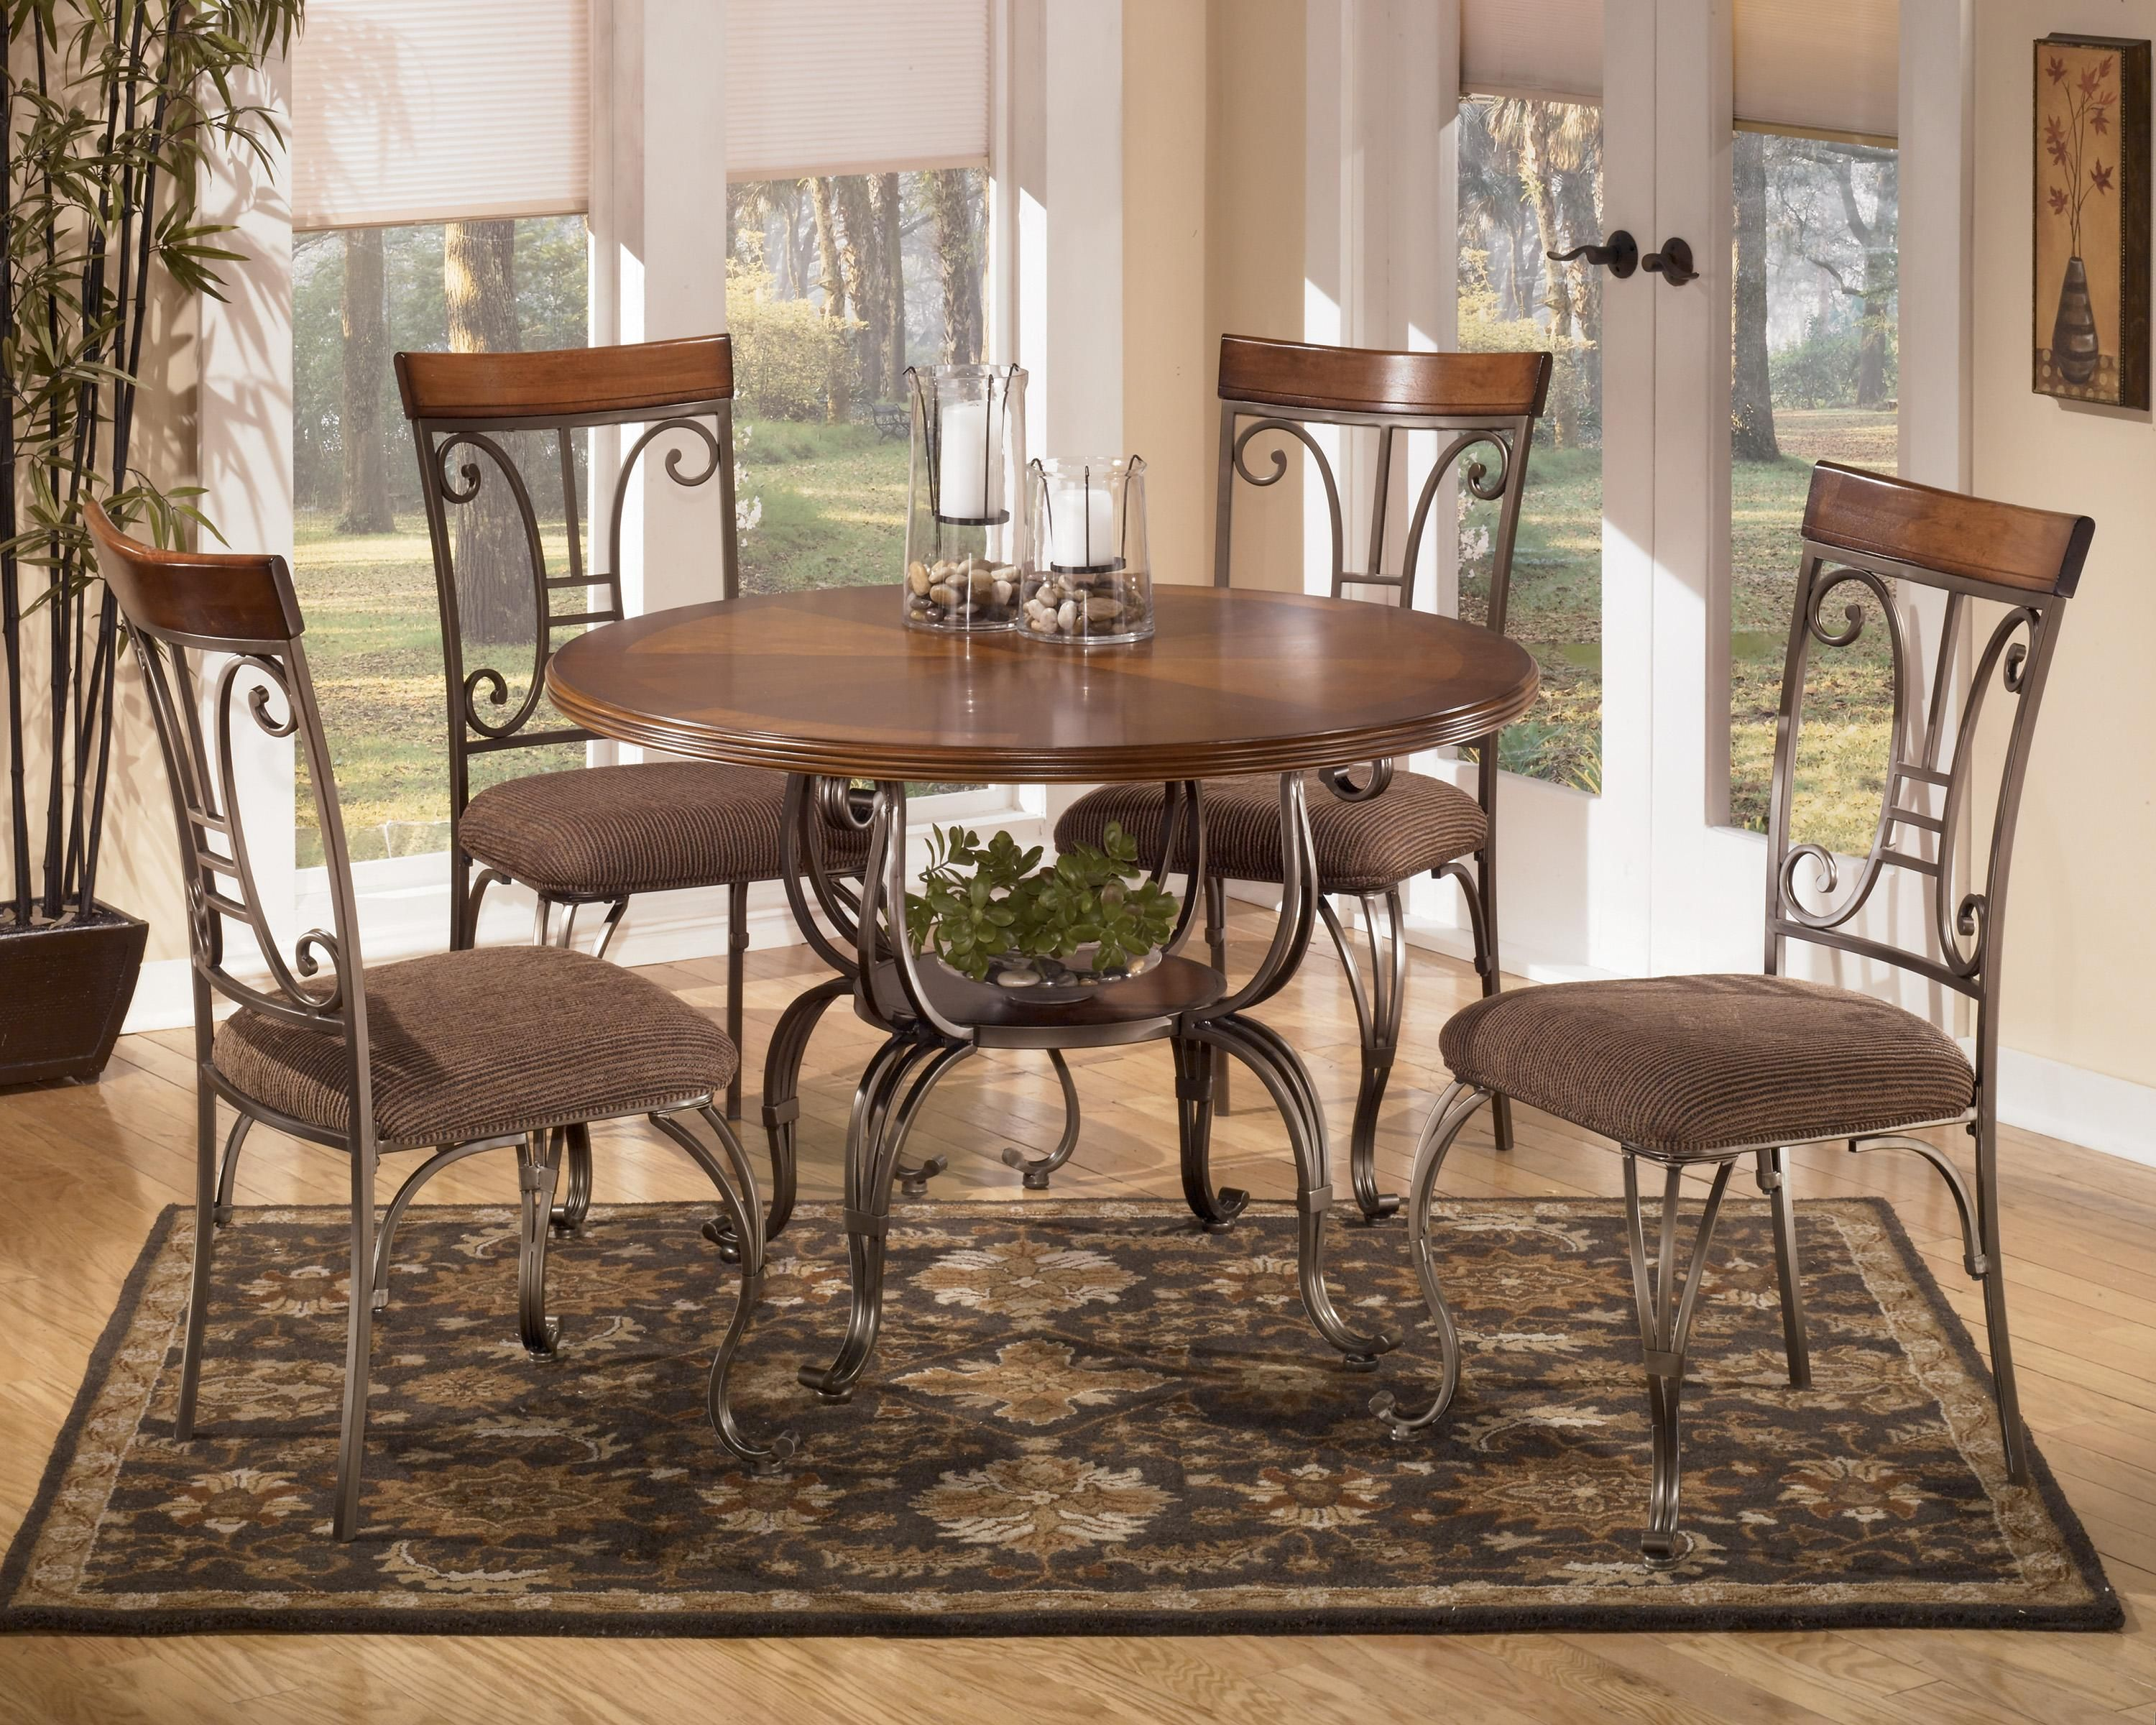 Plentywood 5 Piece Round Dining Table Set By Signature Design By Ashley Home Dining Room